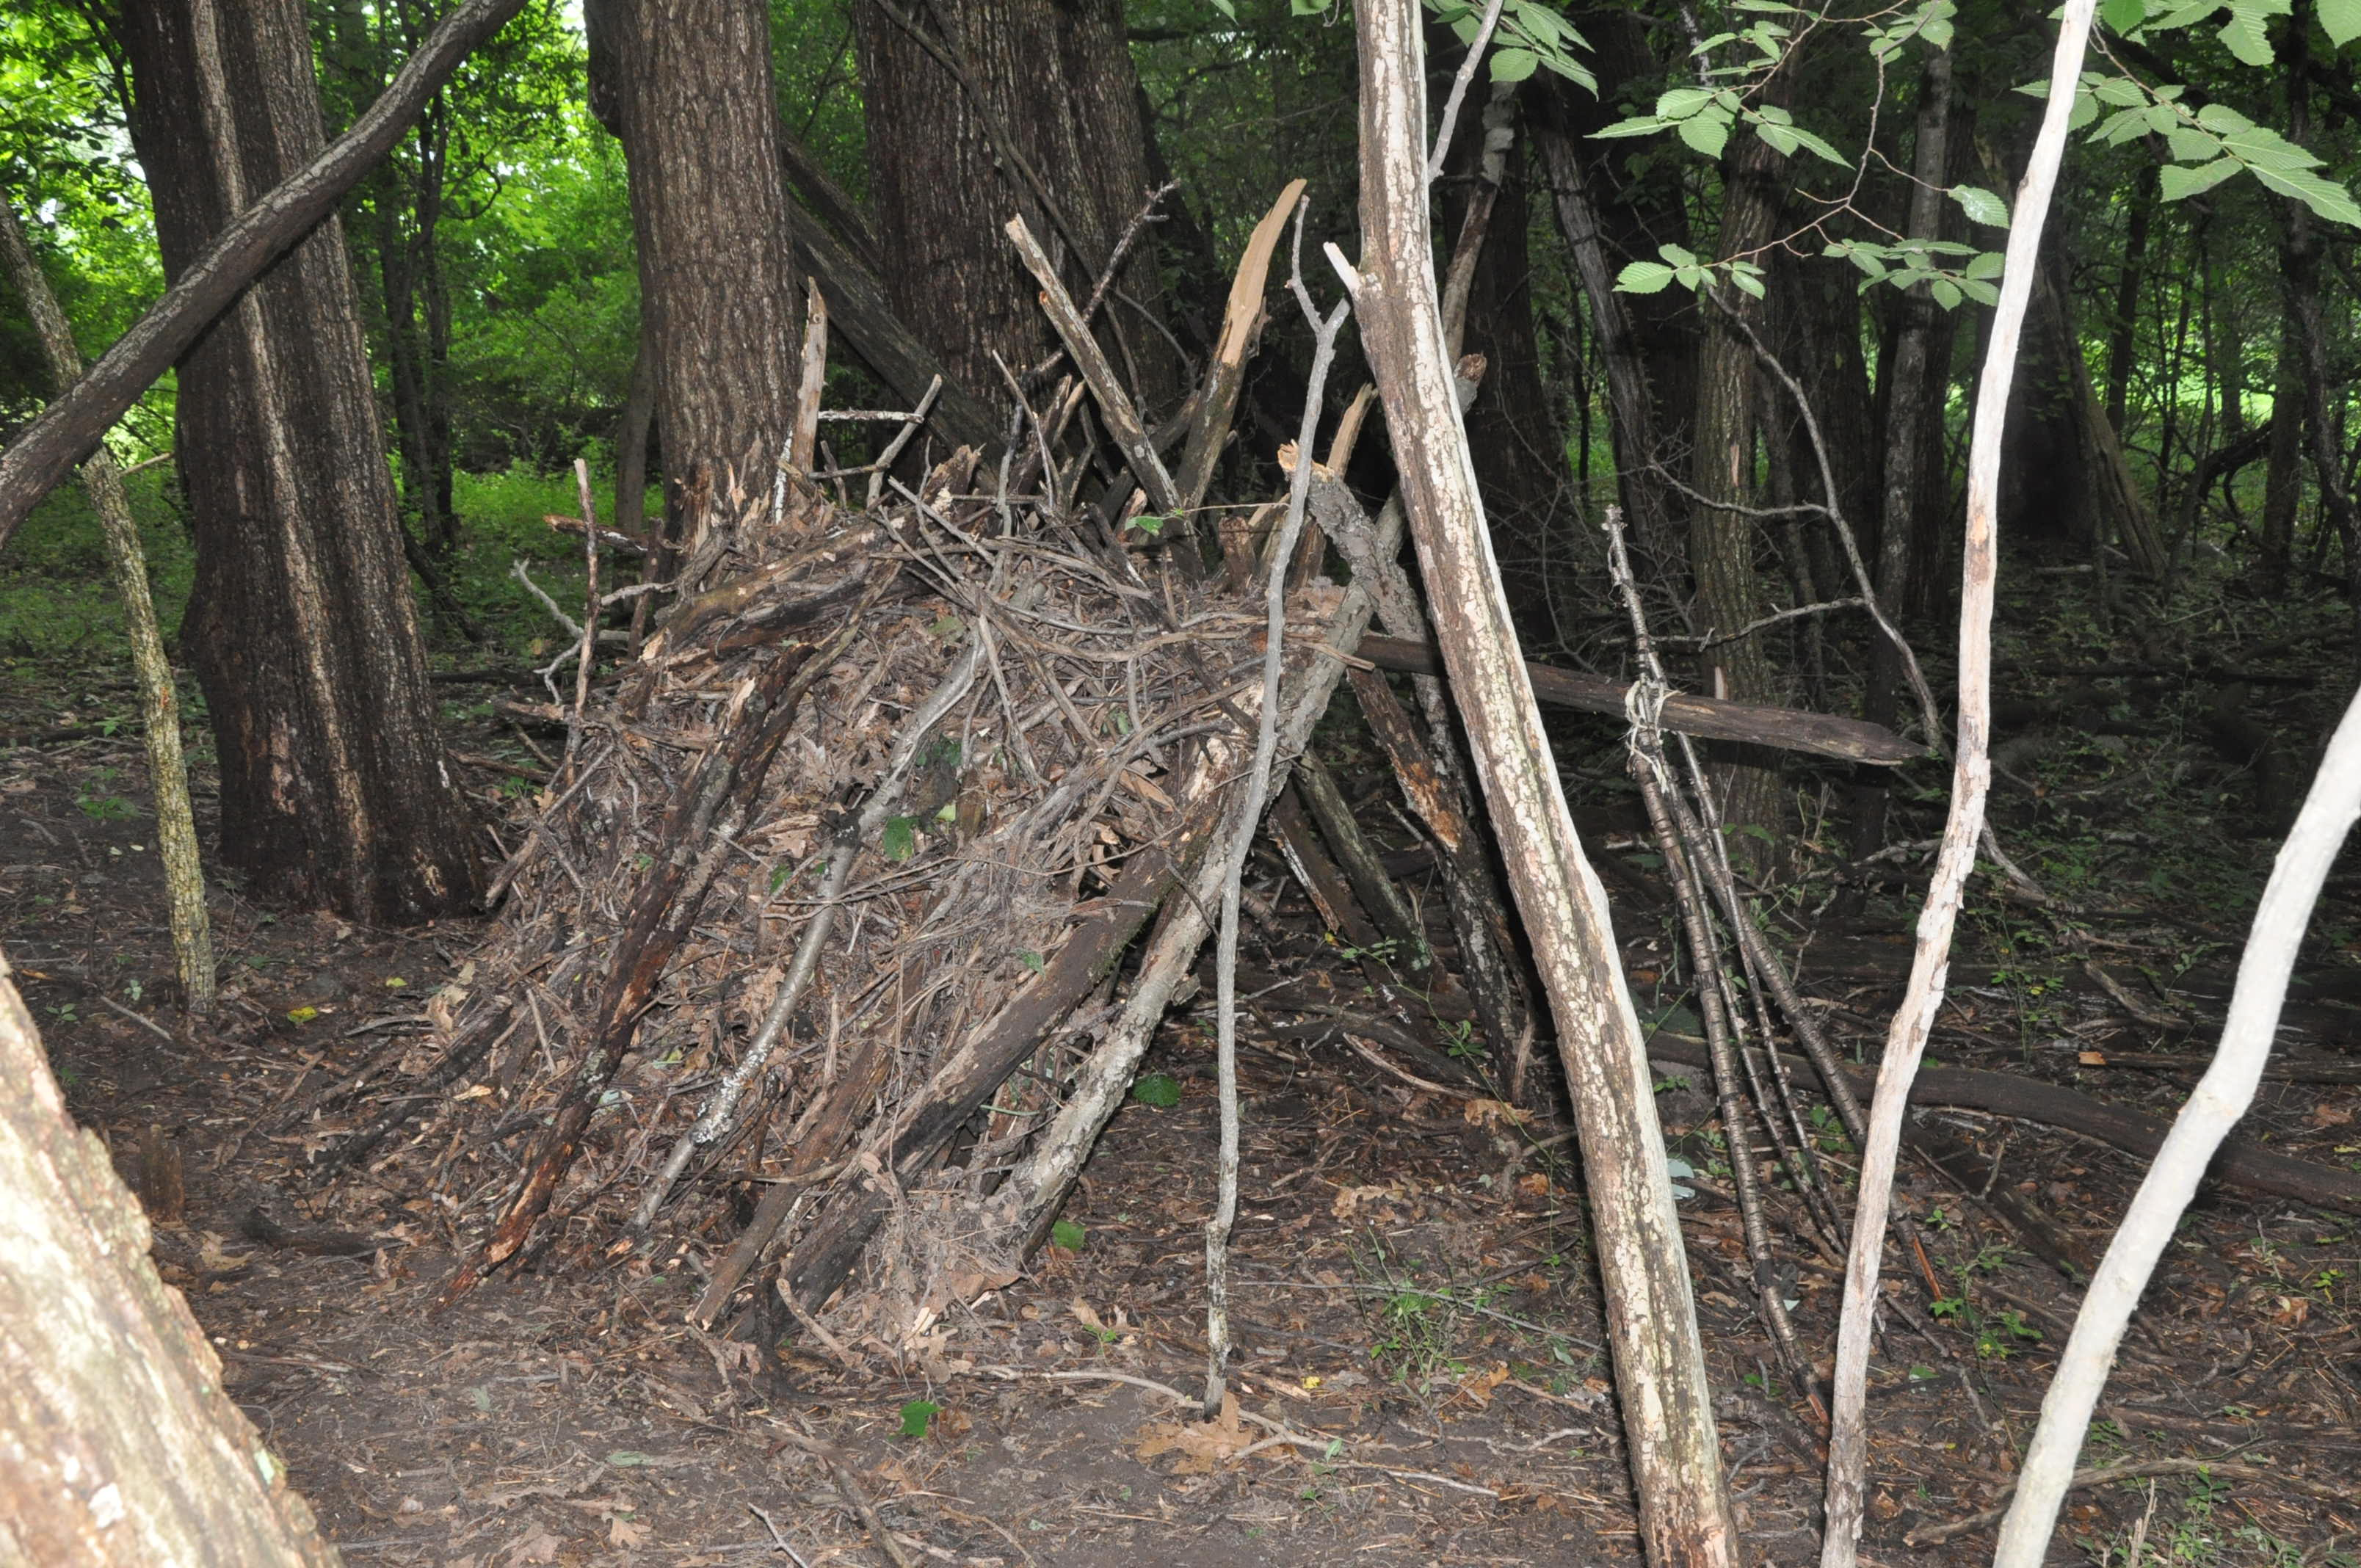 How to Build Survival Shelter: Getting Yourself Out of the Elements in a Pinch